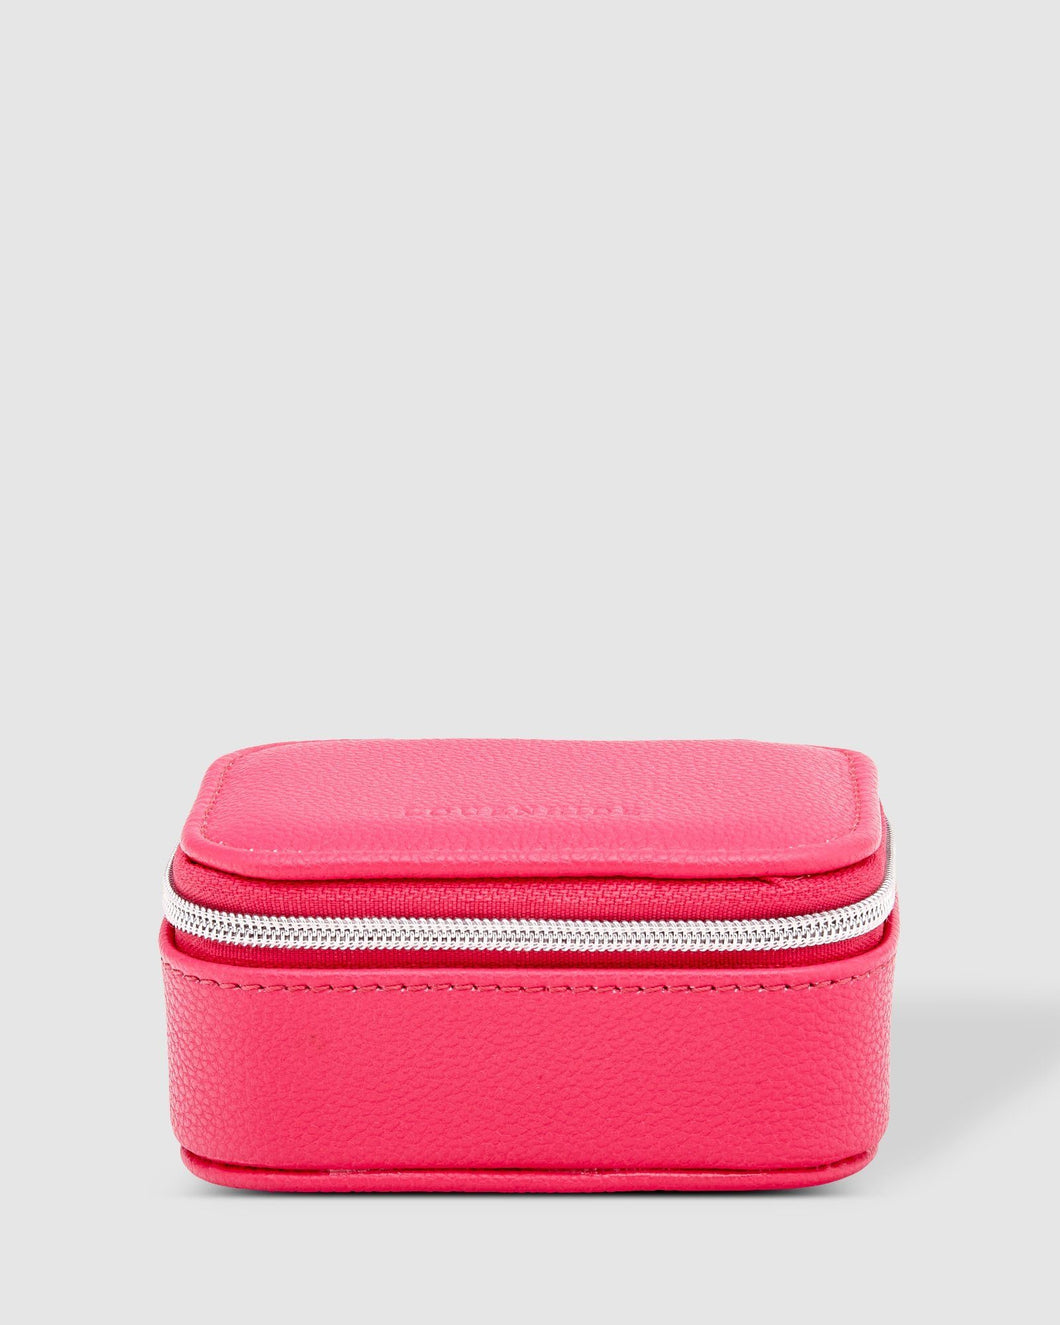 Louenhide Suzie Fuschia Jewellery Box - Global Free Style